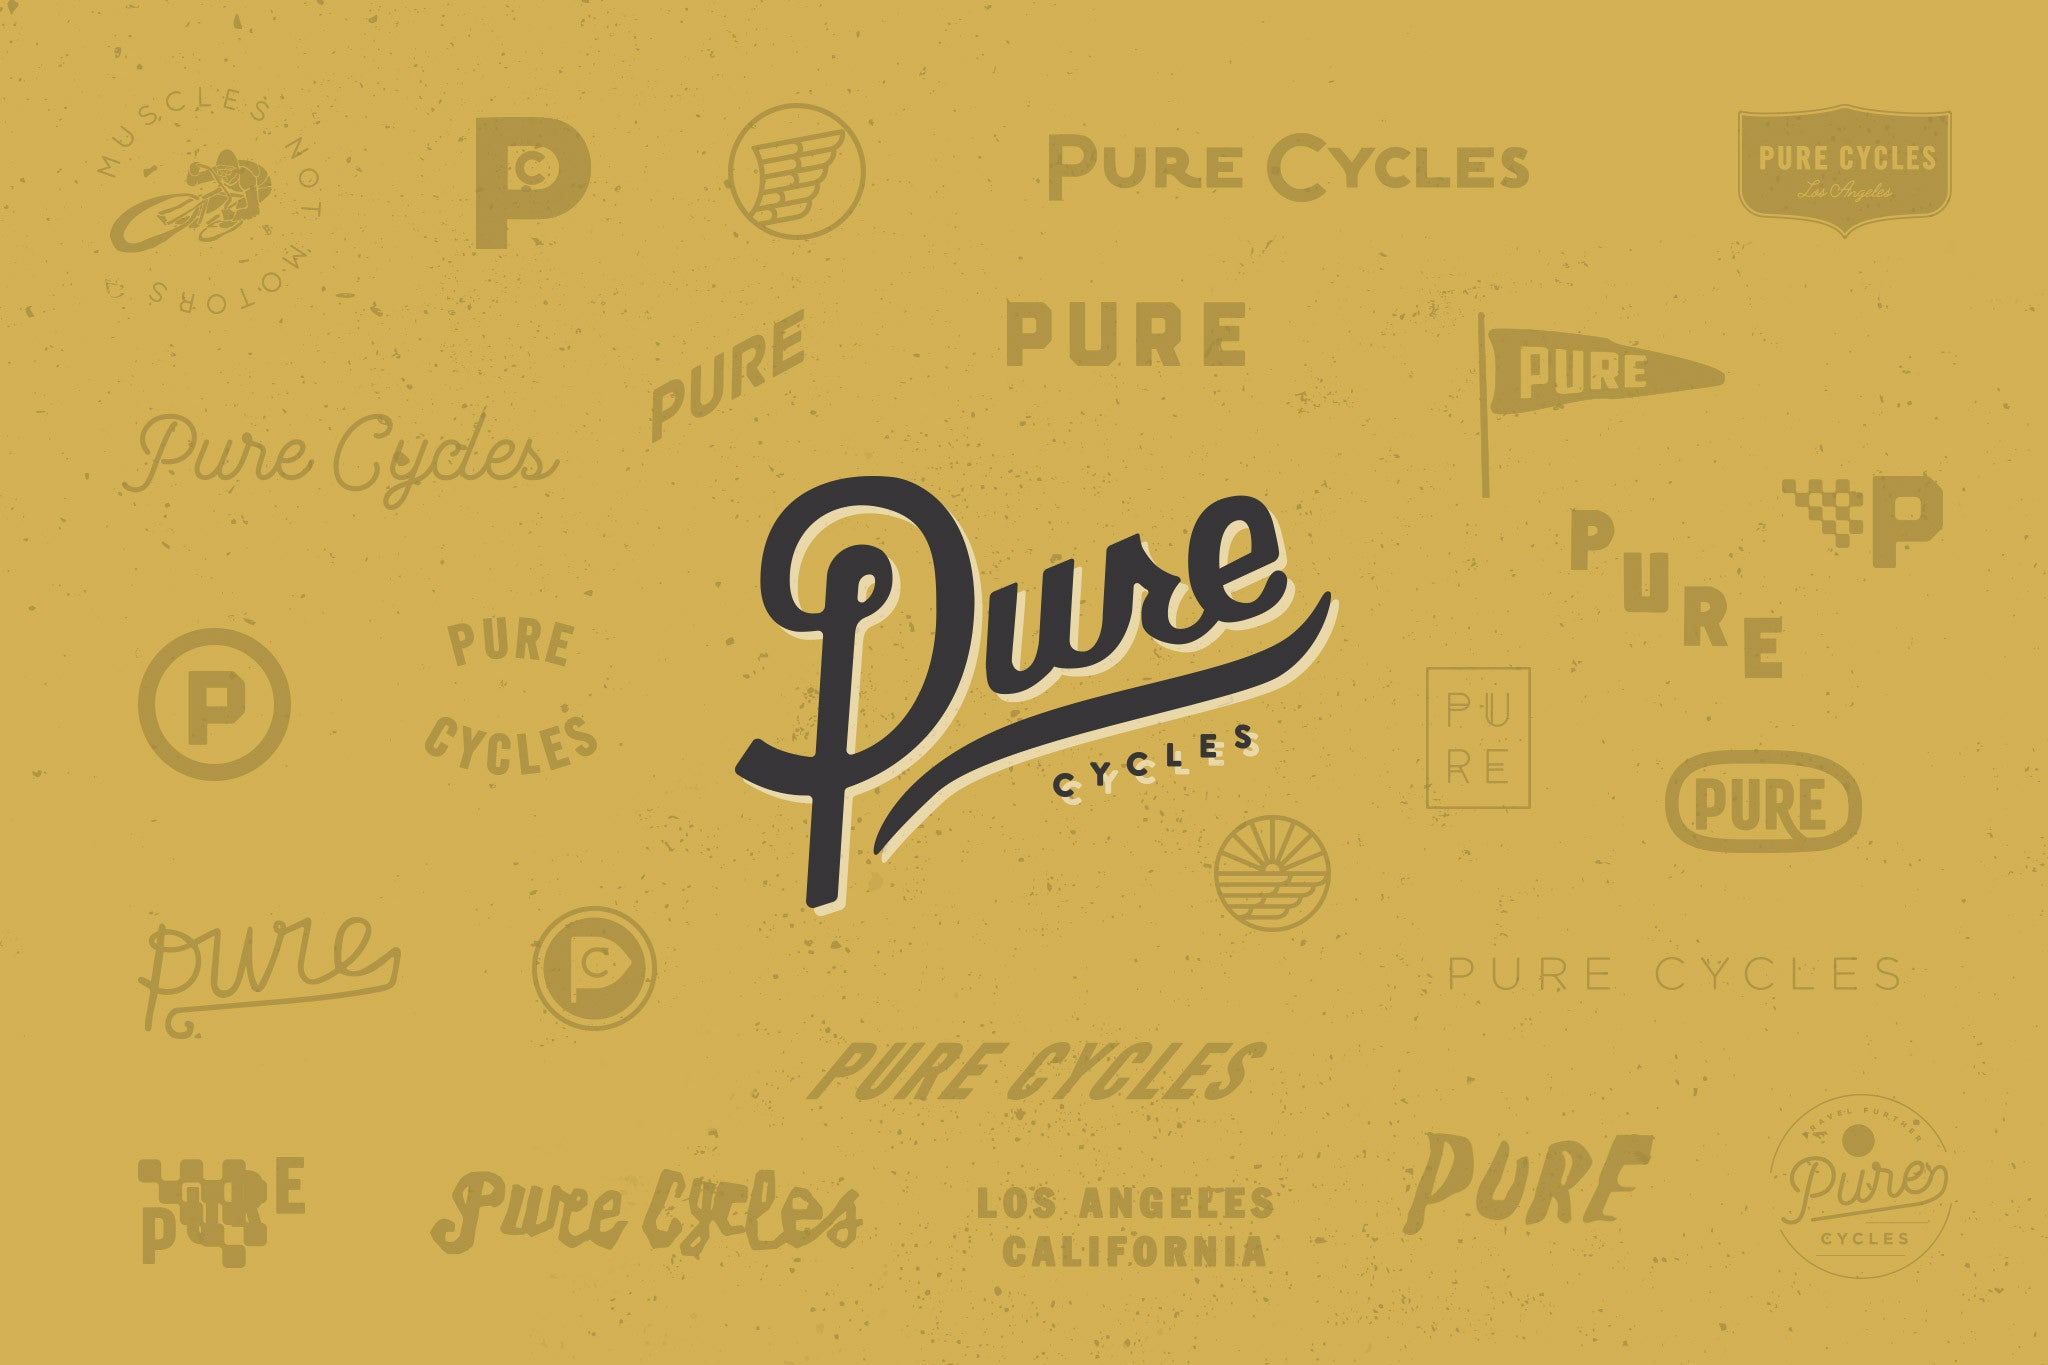 Officially Pure Cycles